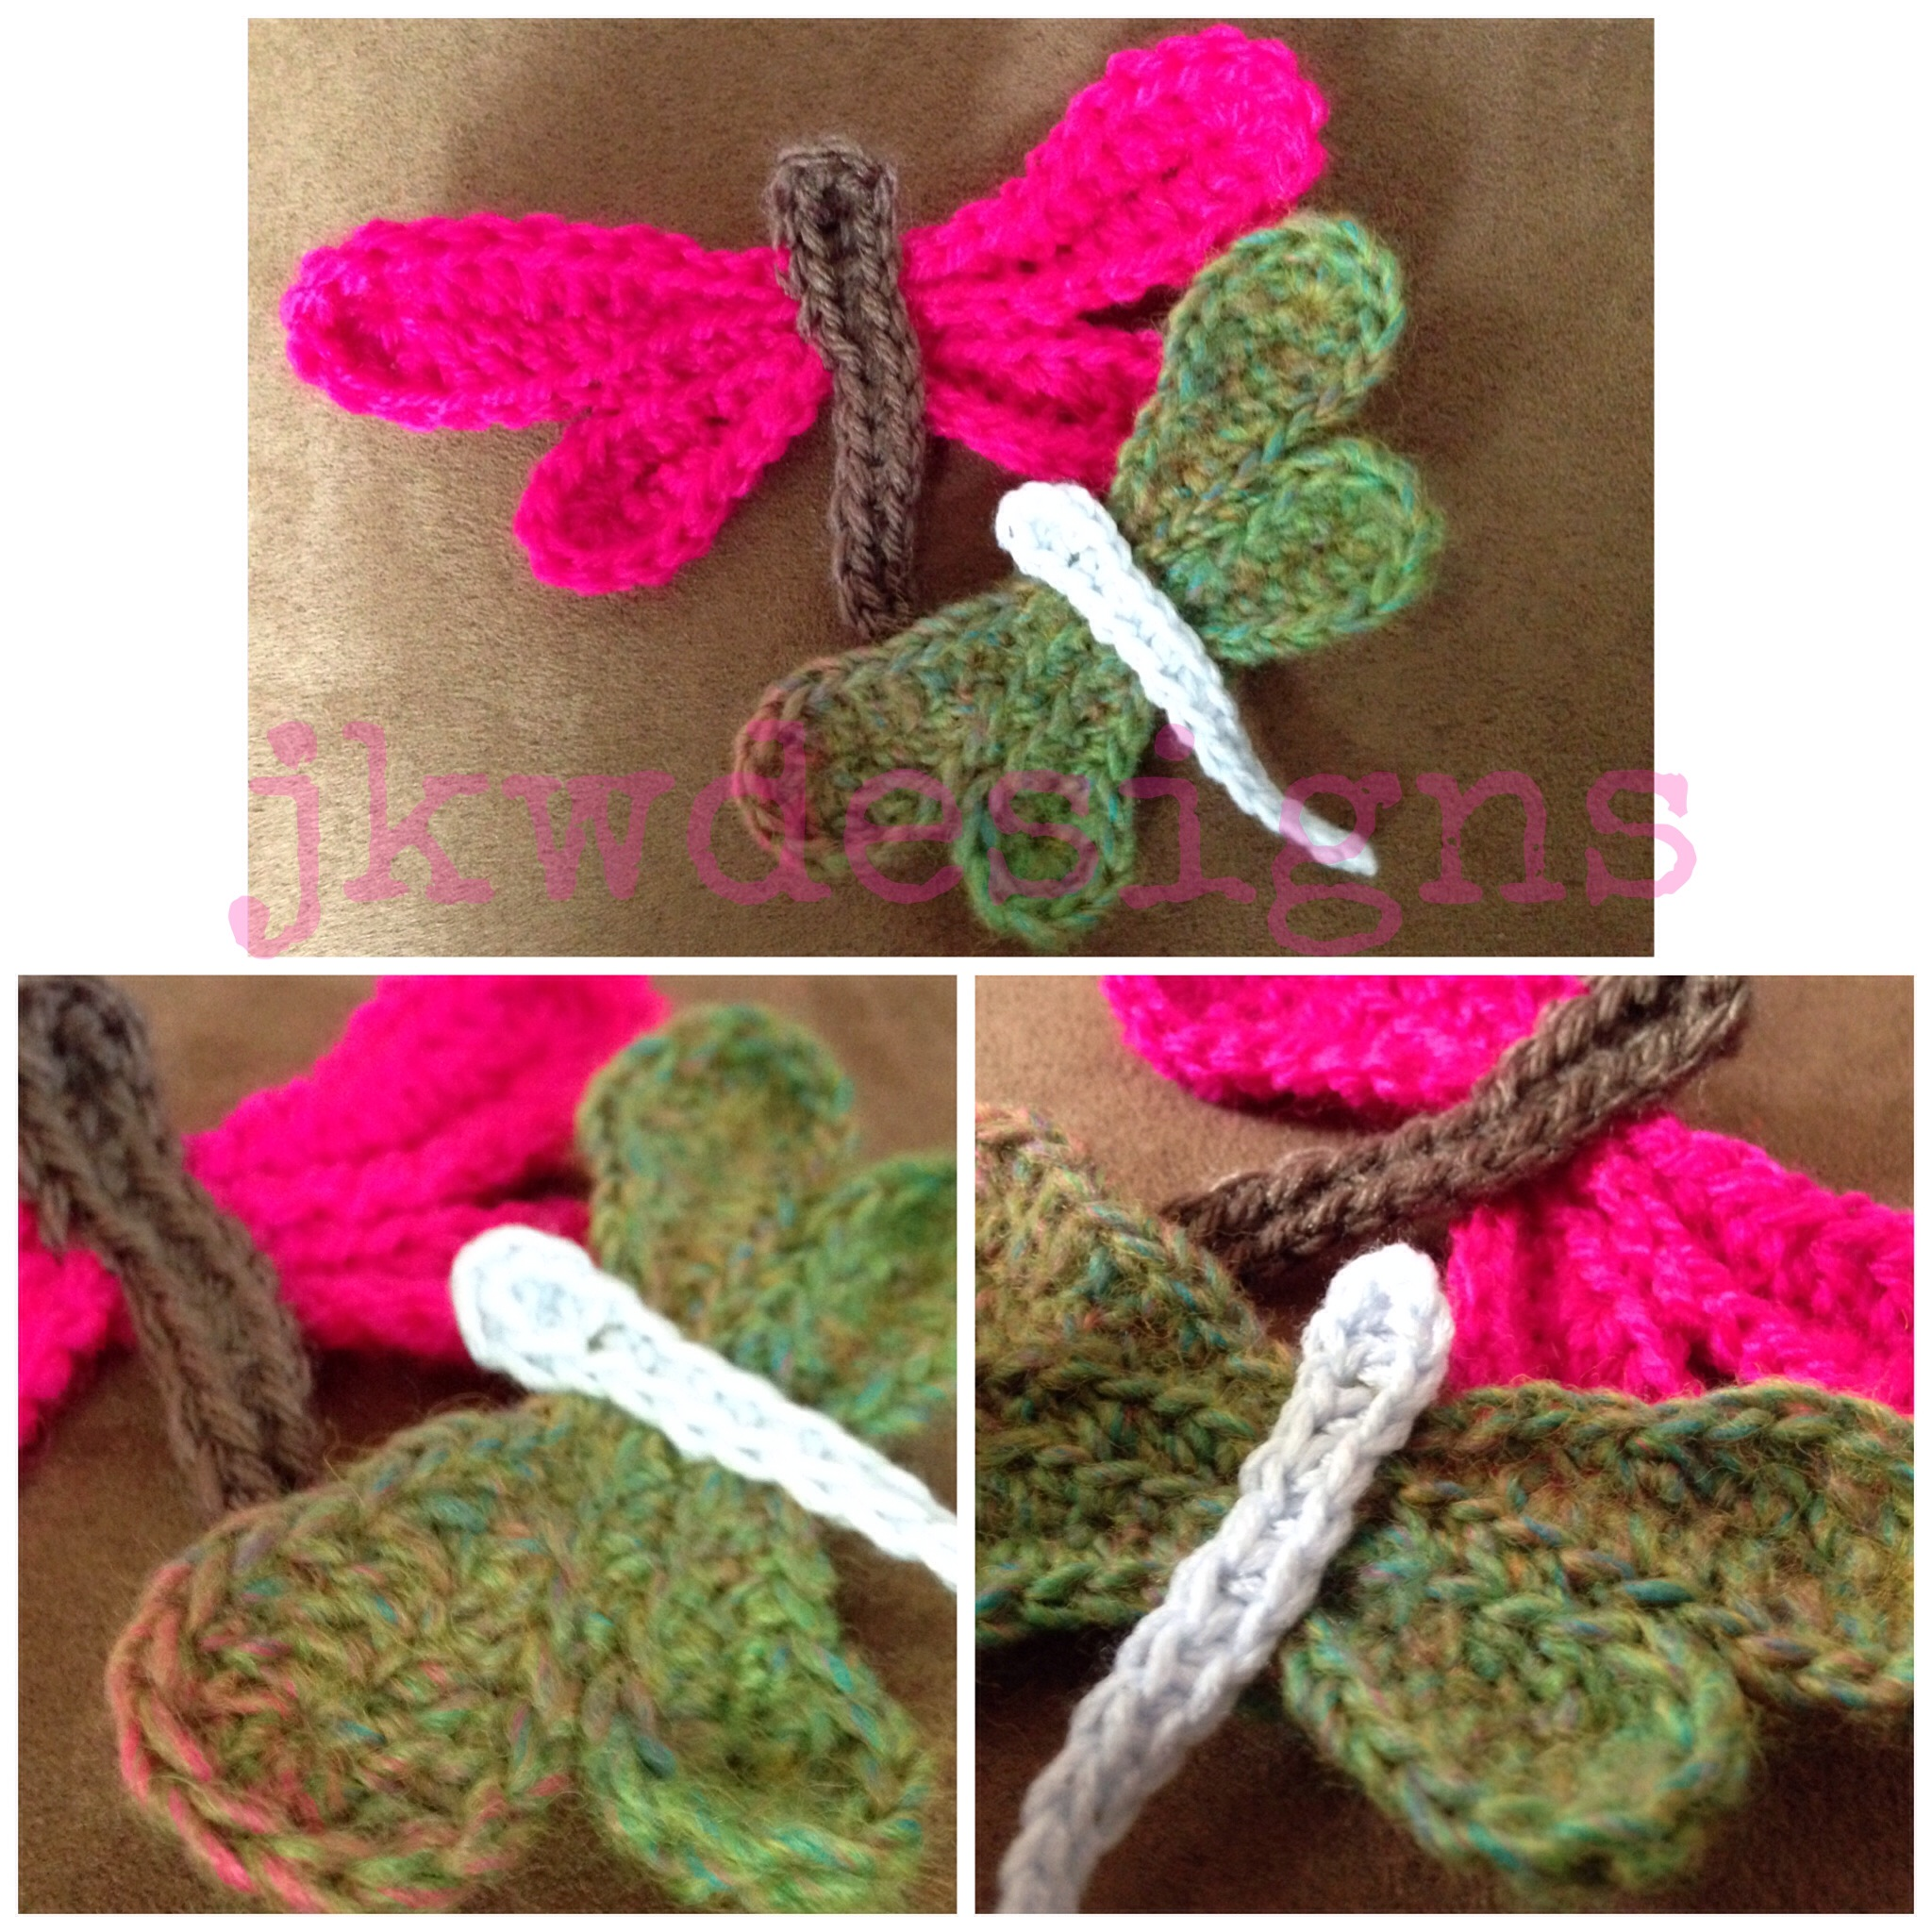 Dragonfly Crochet Pattern Magnificent Ideas